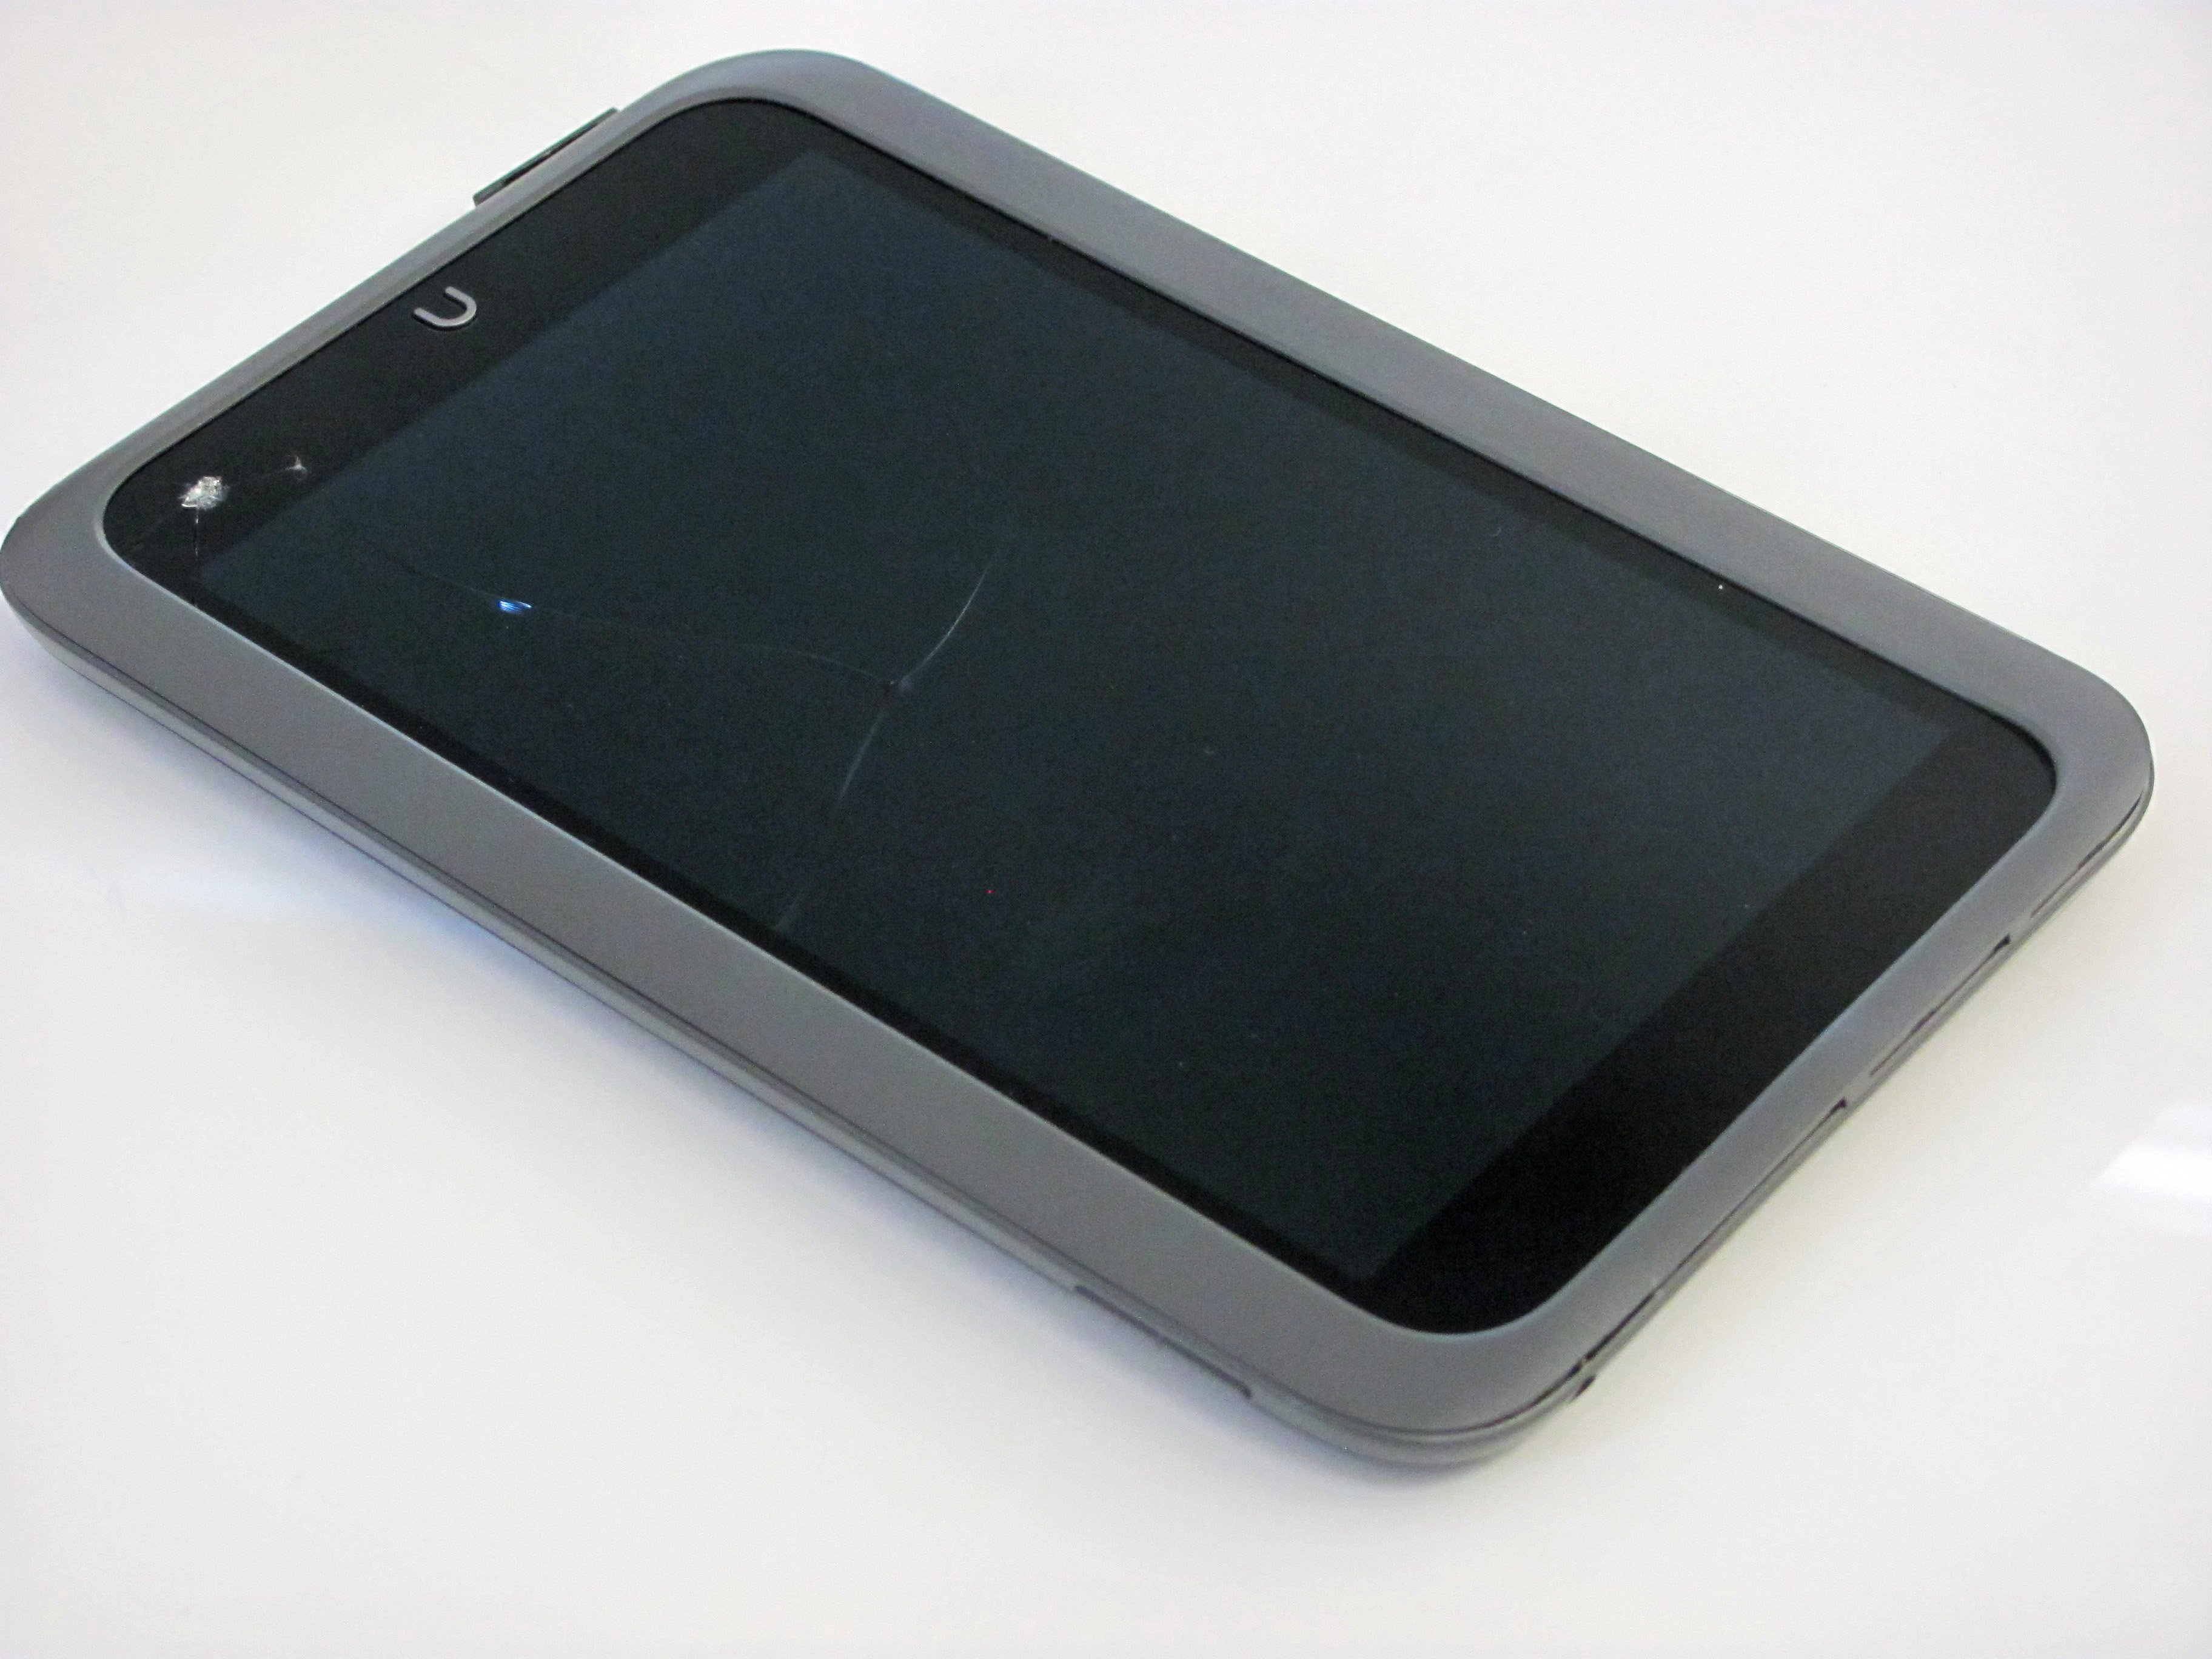 Nook Hd Back And Front Casing Replacement Ifixit Repair